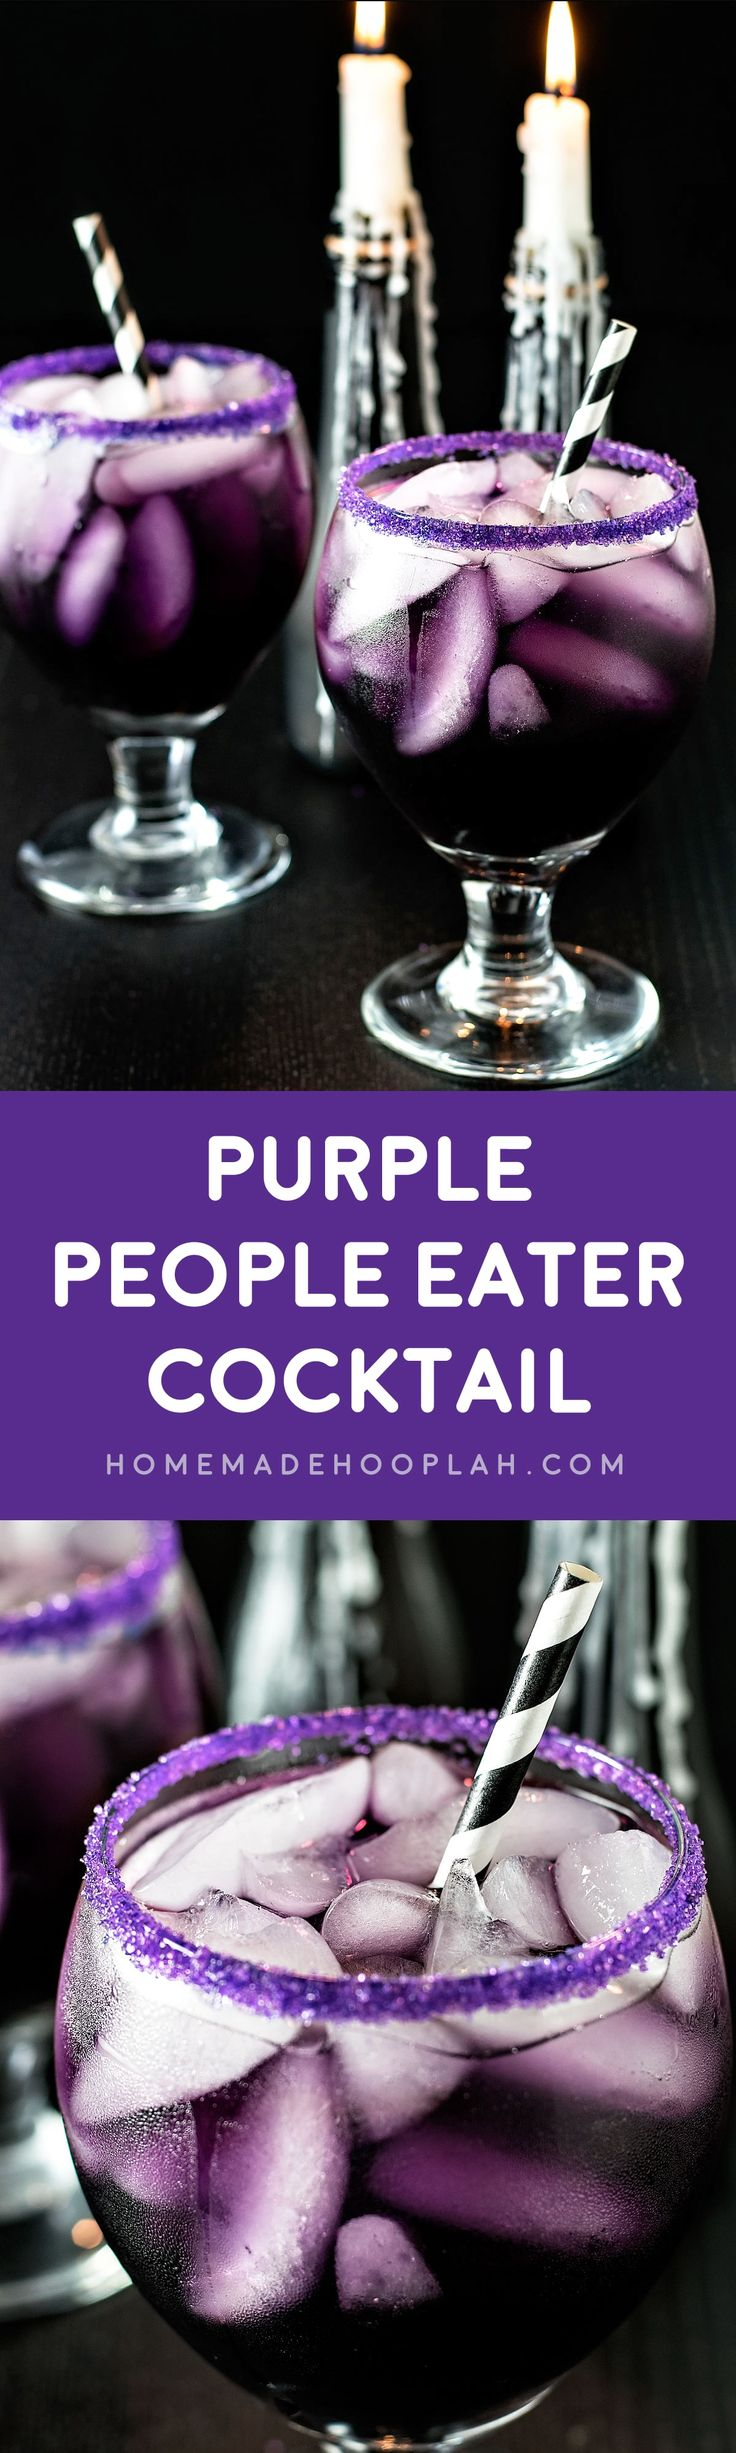 Purple People Eater Cocktail! A tasty (and creepy!) cocktail that gets its purple hue from blue curacao, grenadine, and cranberry juice. A perfectly purple cocktail for any party!   HomemadeHooplah.com